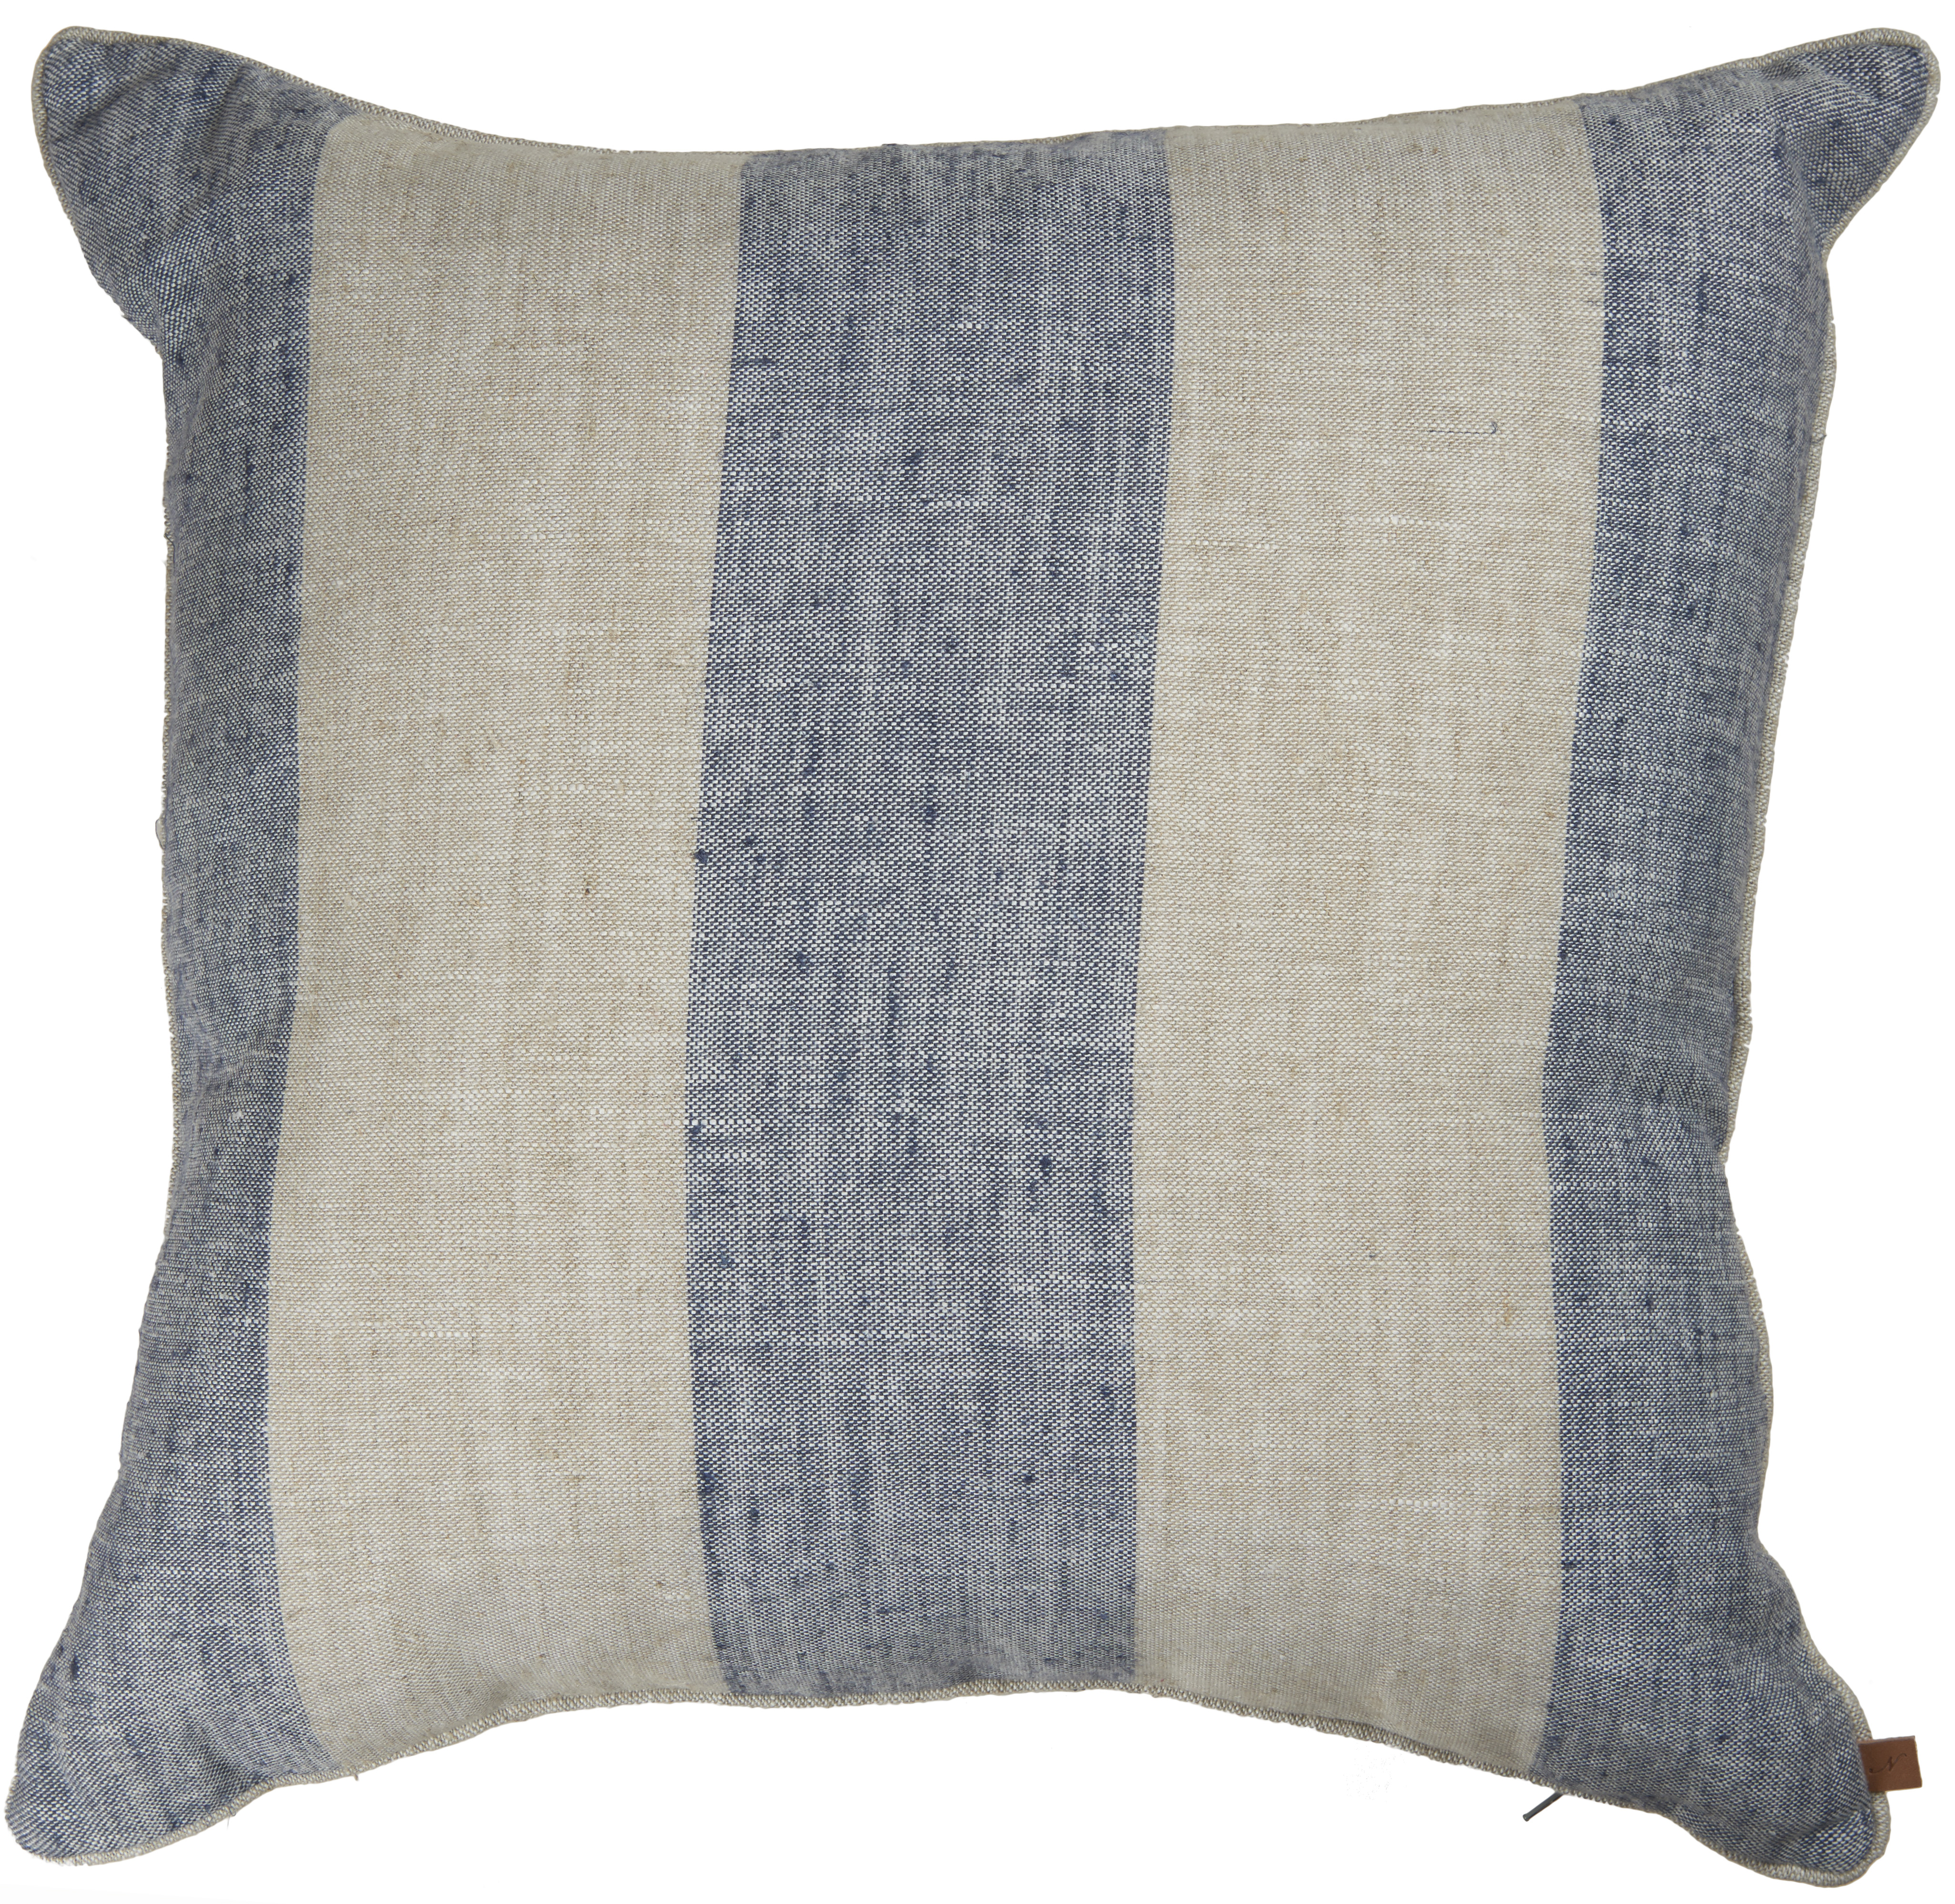 Florence Cushion 57x57cm, Imogen Holt Stripe